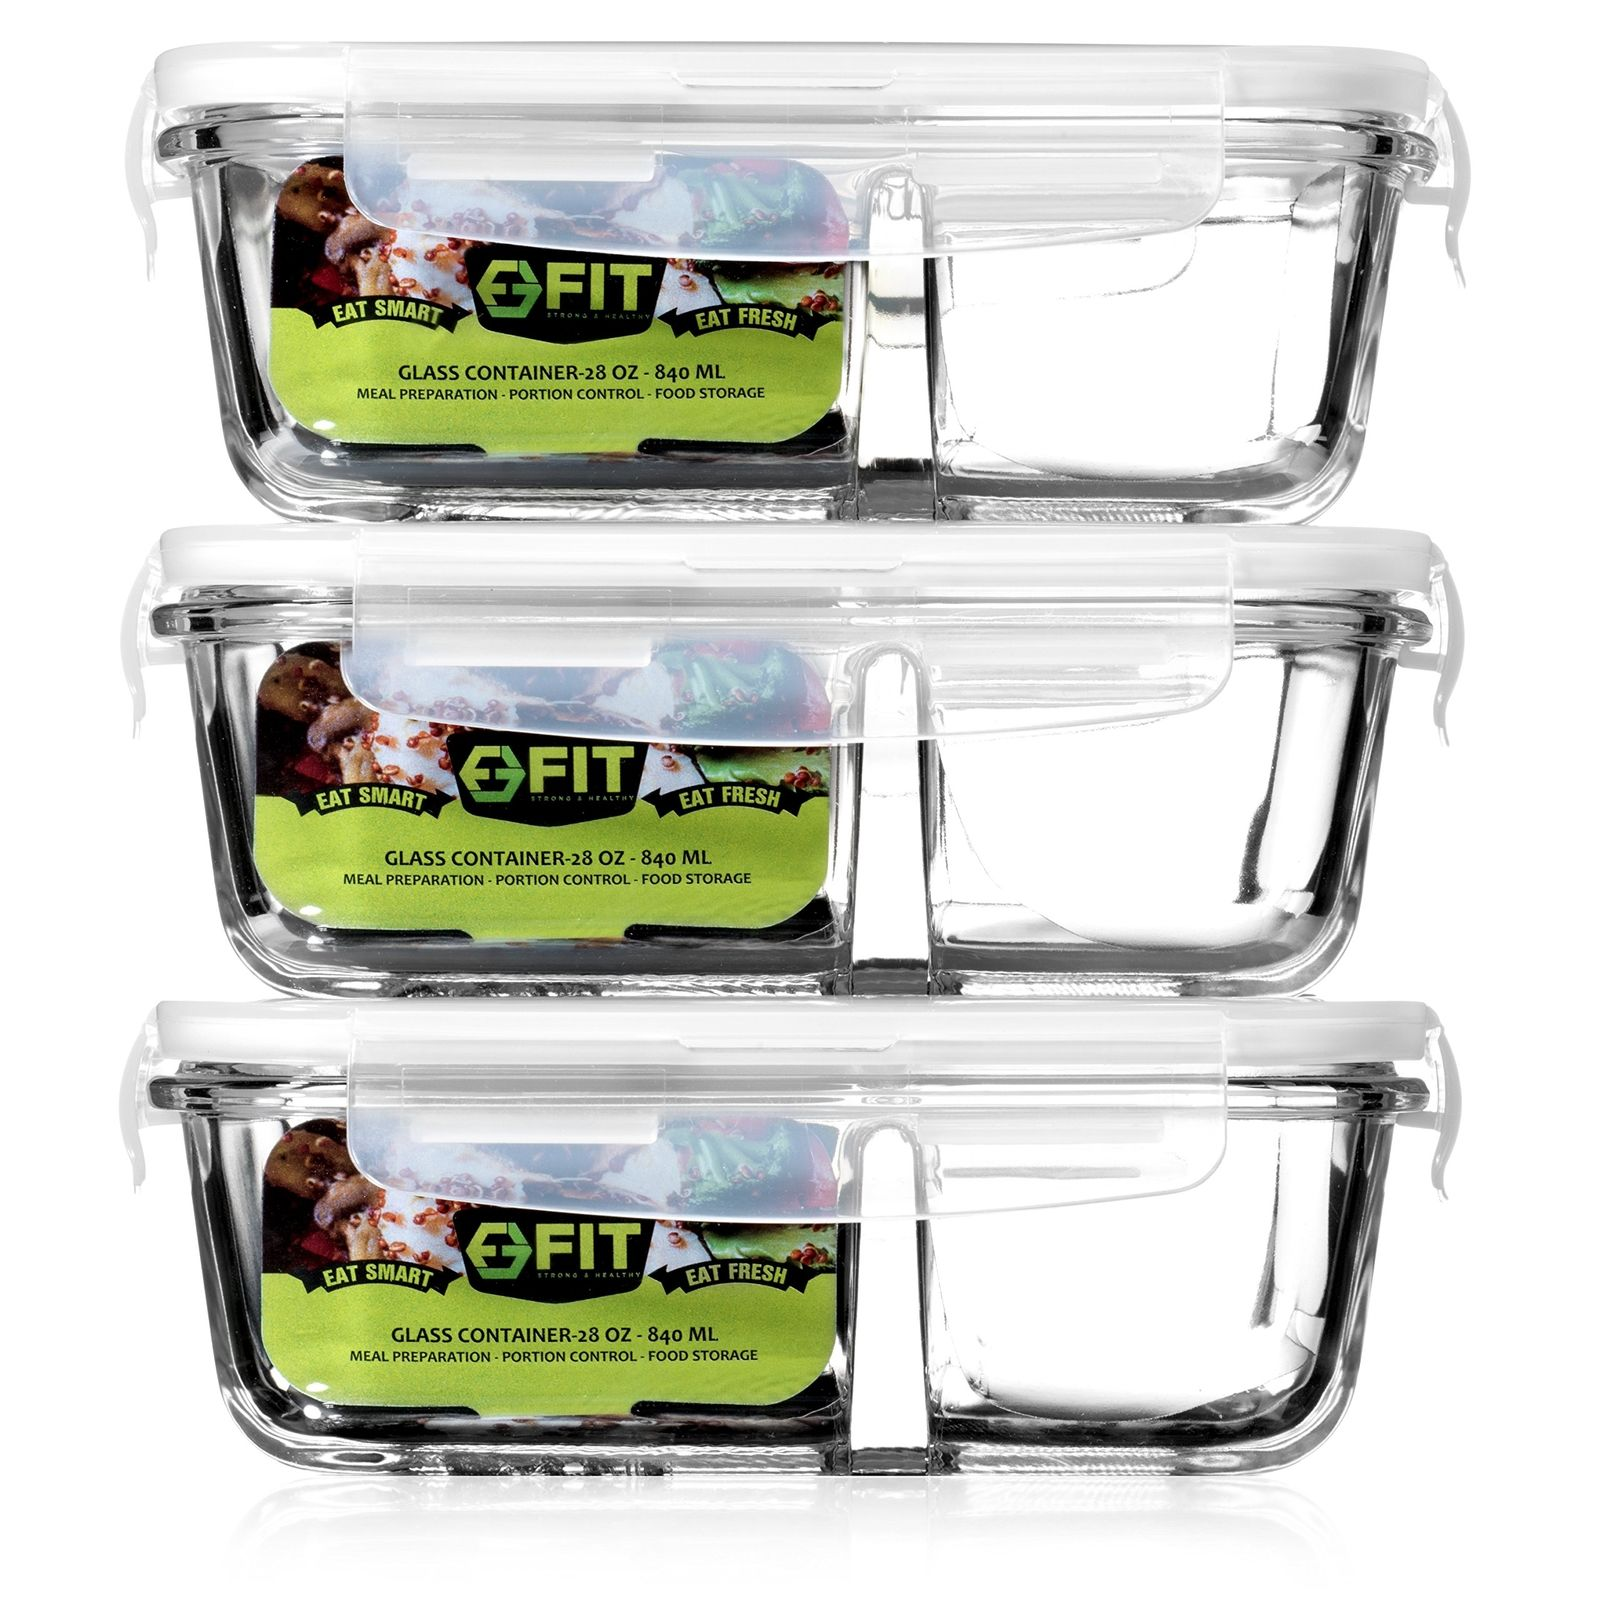 Glass Meal Prep Food Storage Containers with Lids (3 Pack) - 2 Compartment Co... 1